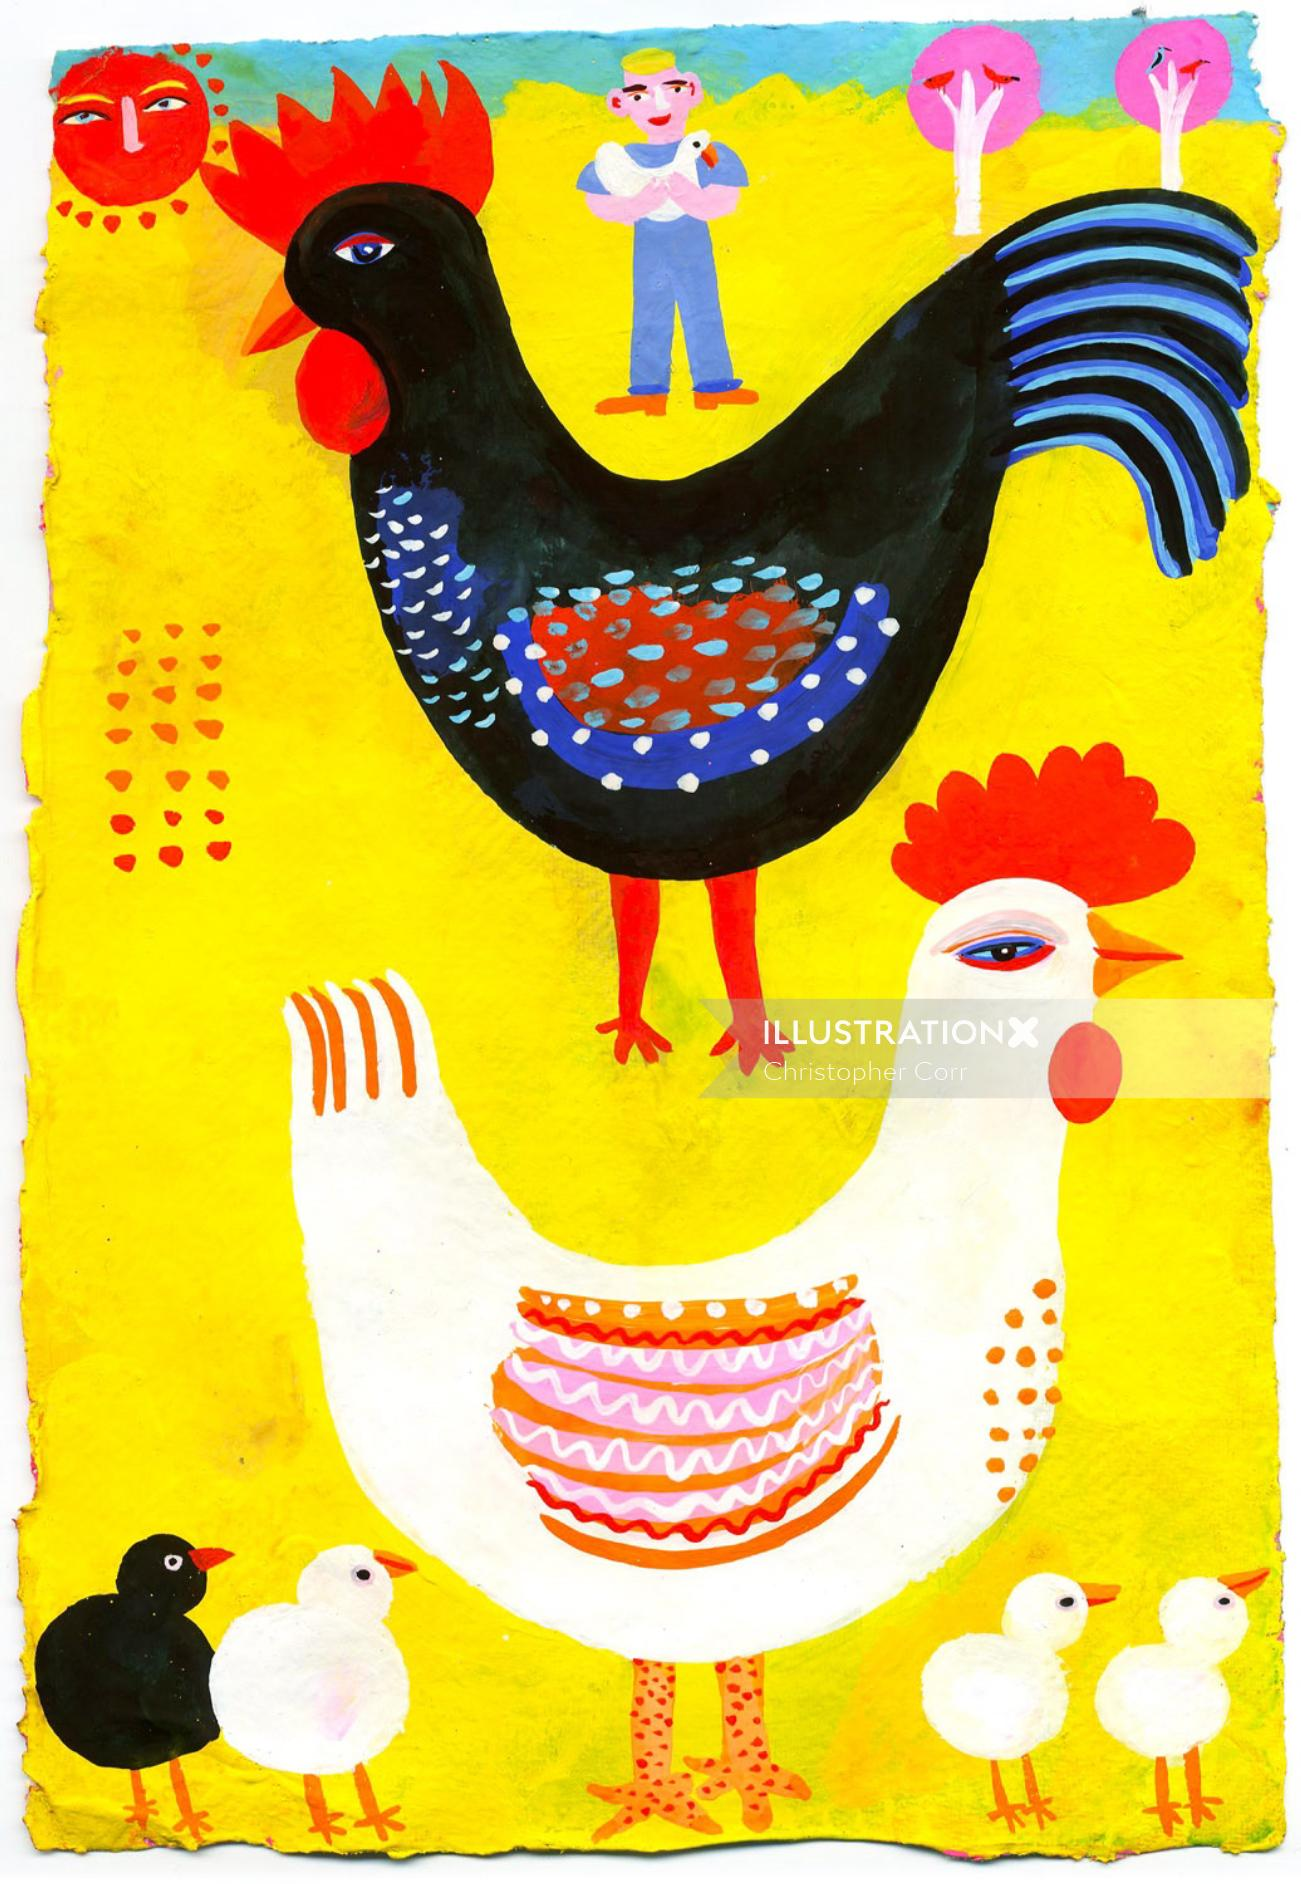 Cock & Hen illustration by Christopher Corr